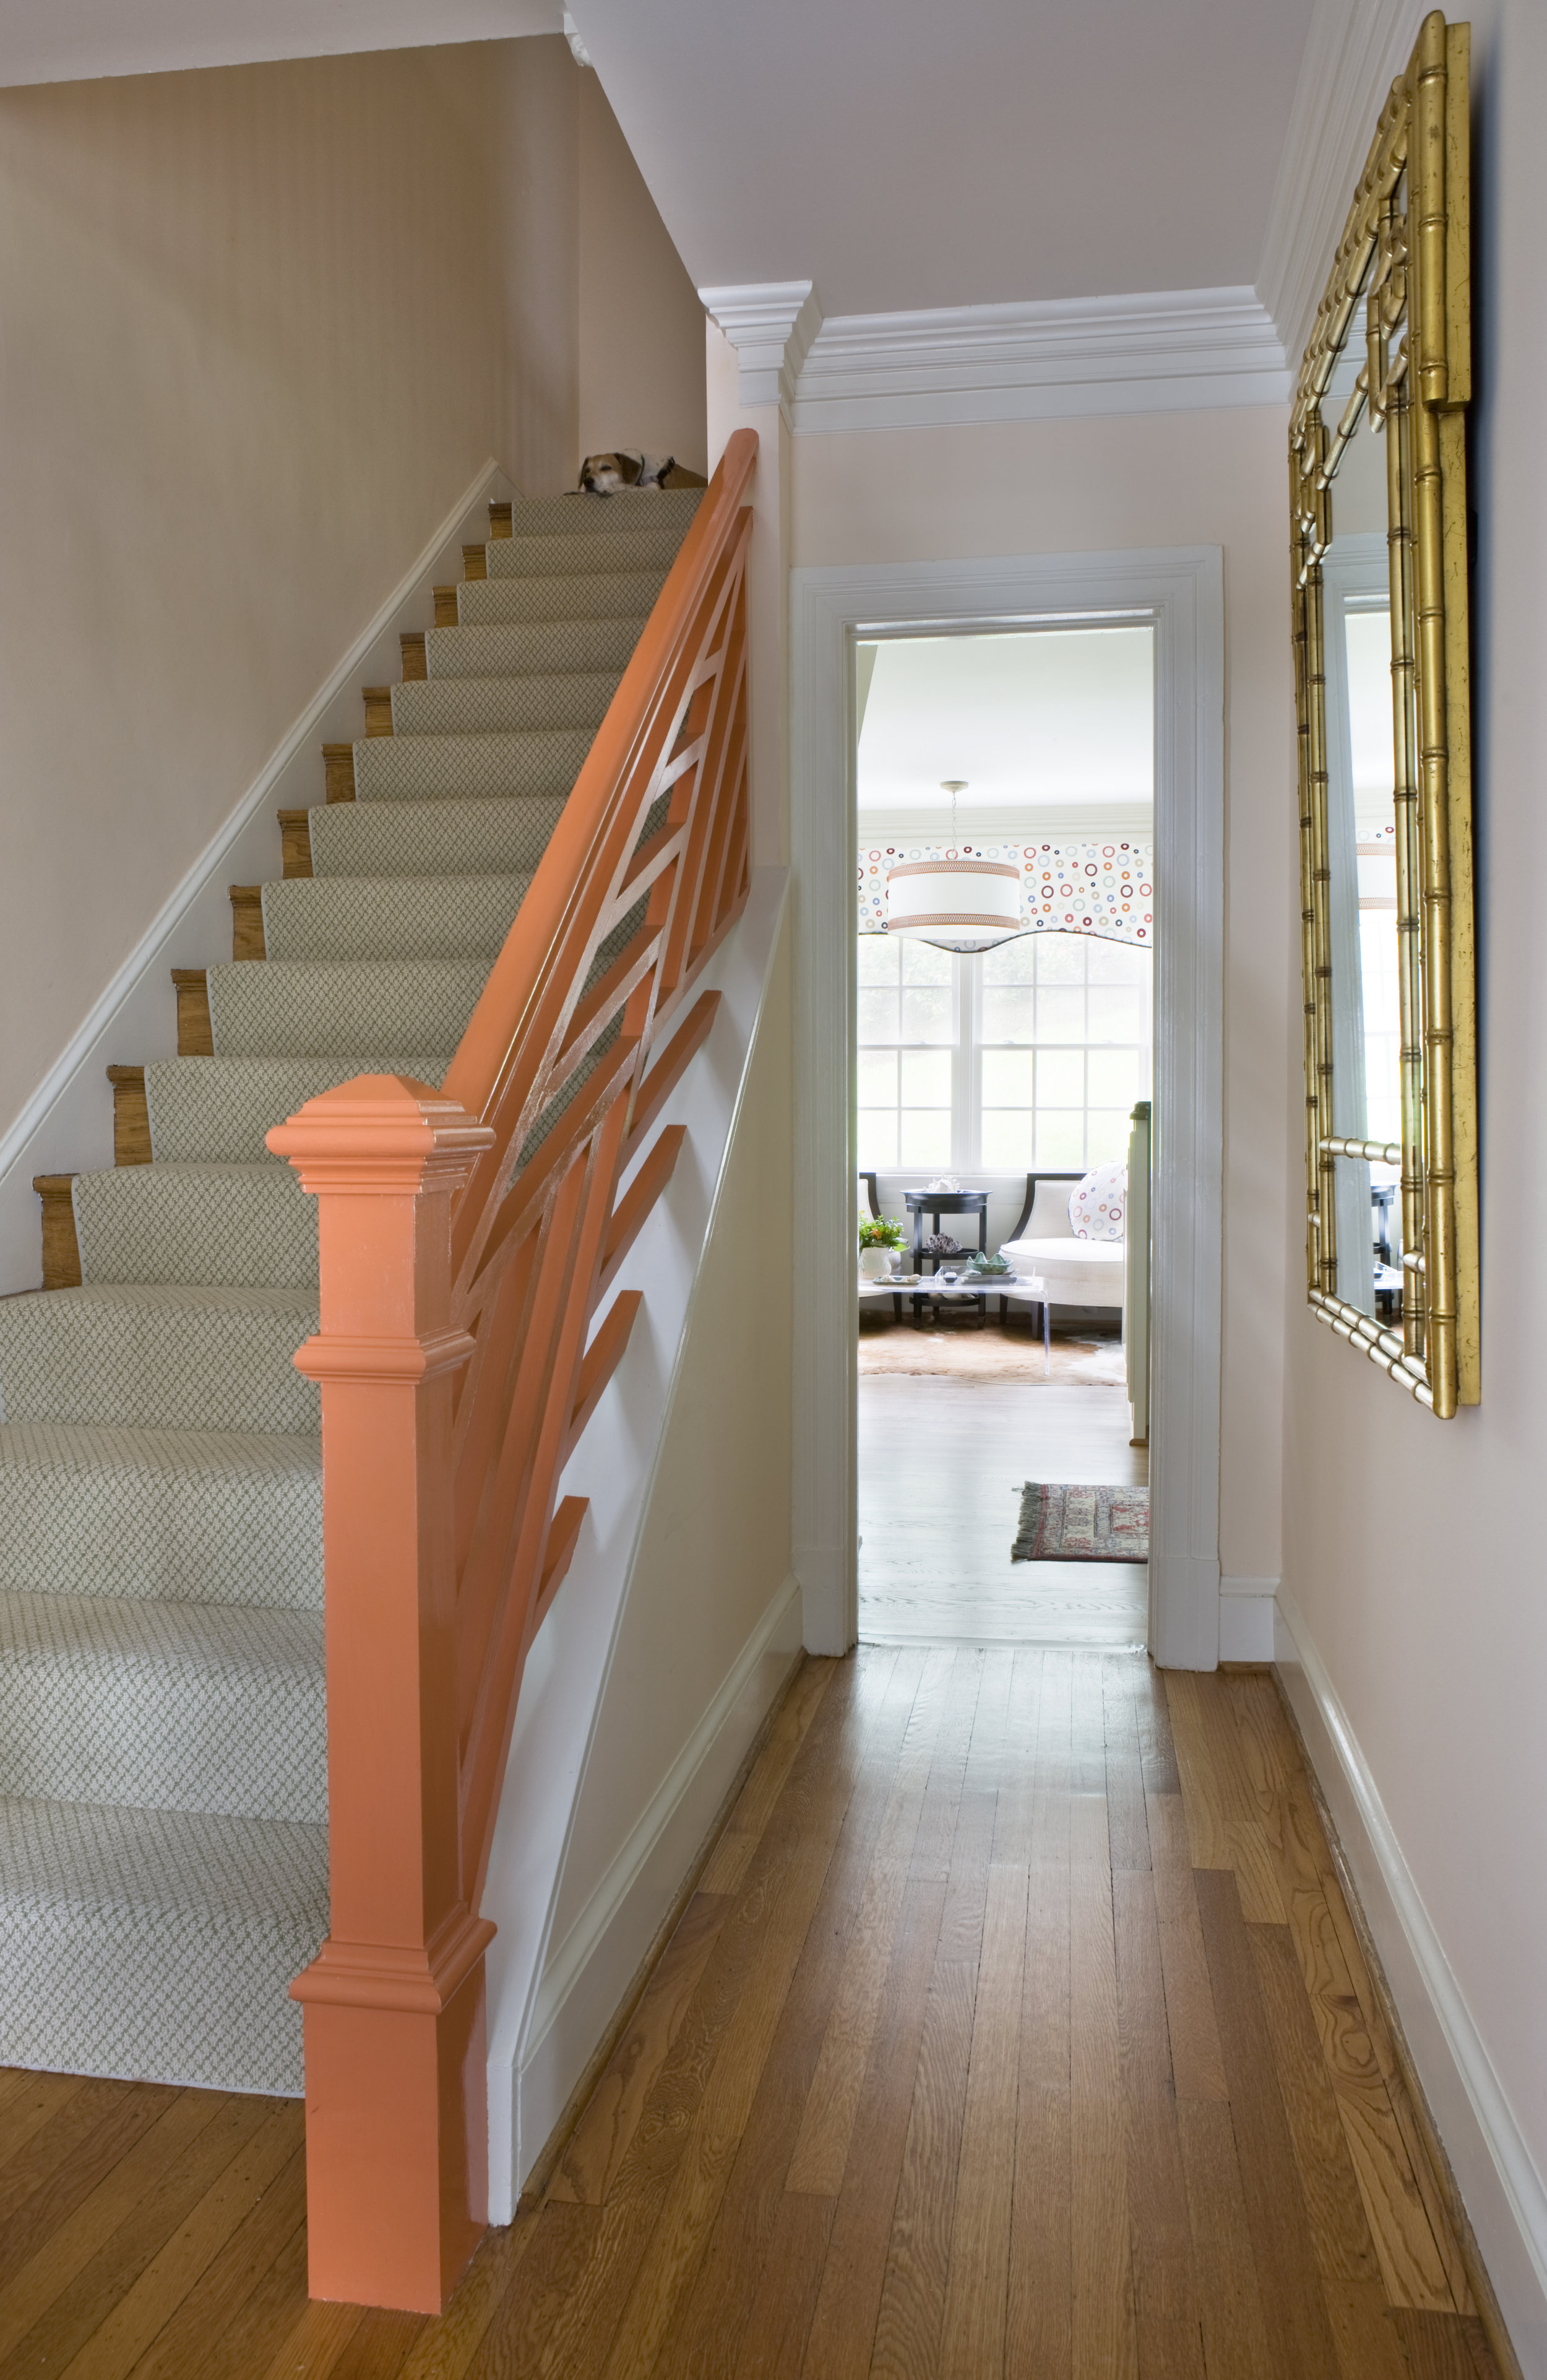 The custom light in the kitchen seating area pairs nicely with the custom railing painted coral in the foyer of this fun home.